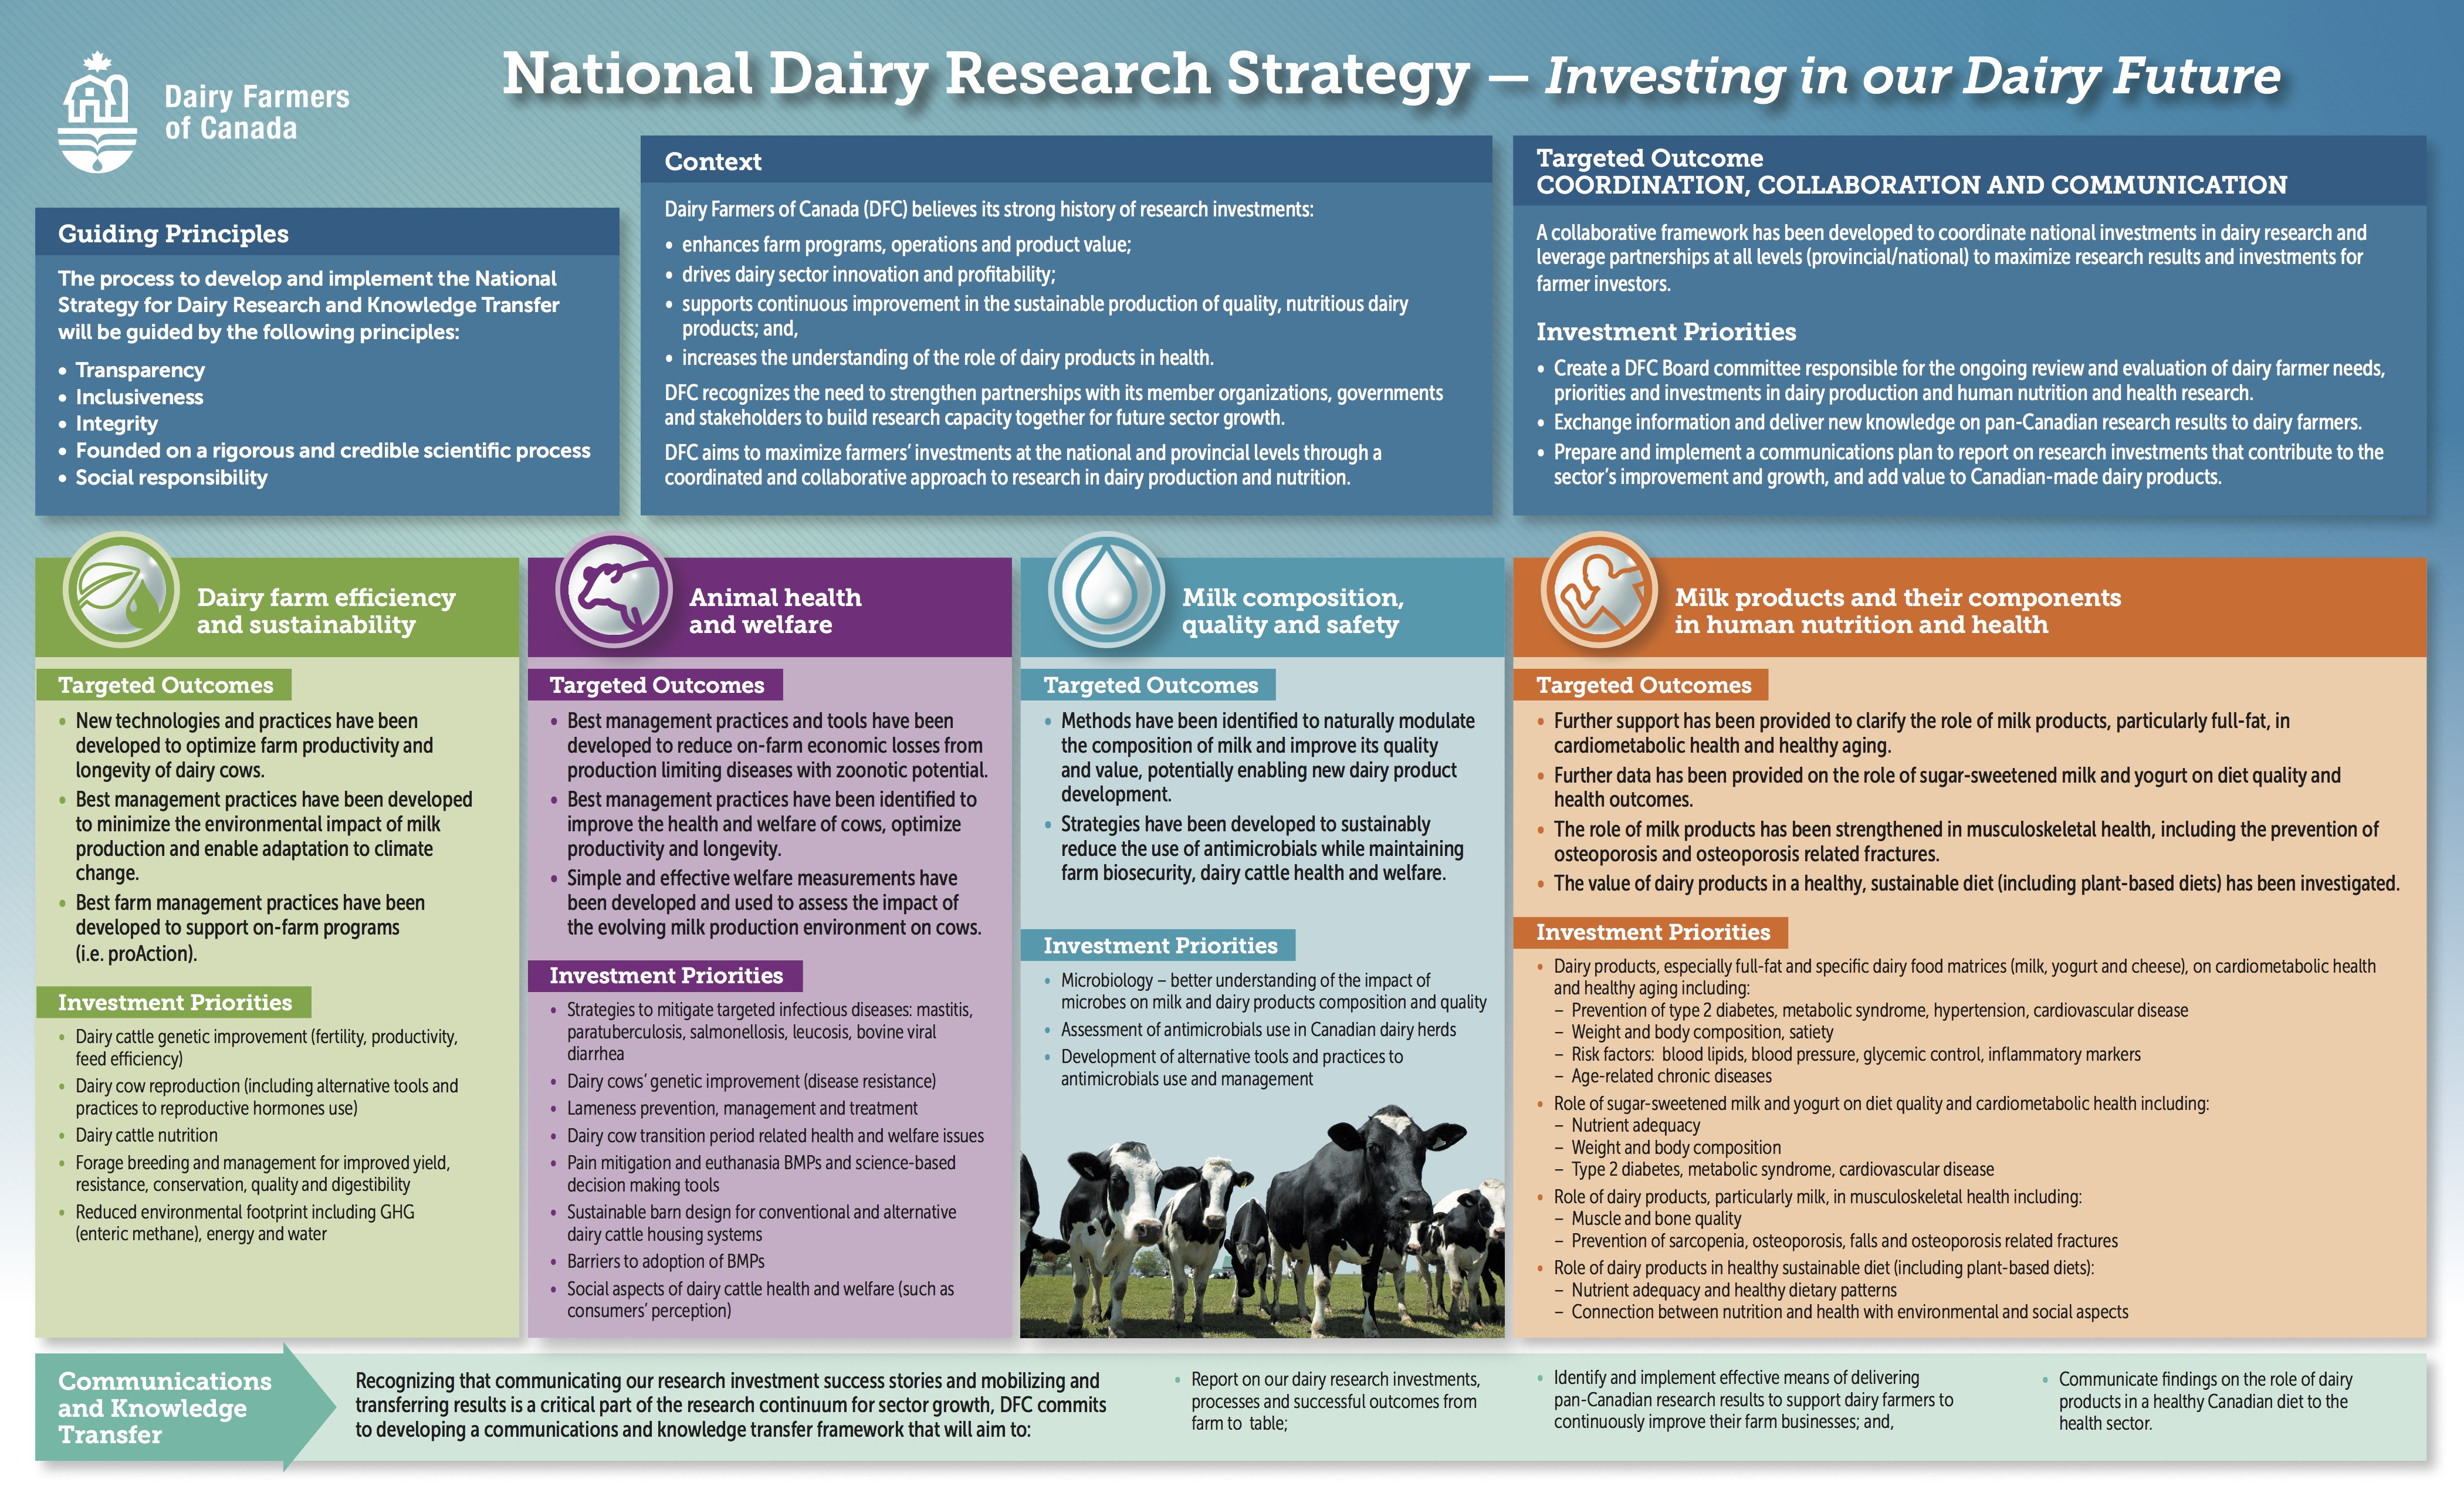 dairiboard summary Dairibord holdings limited 2013 annual report 7 dairibord holdings limited is one of the largest manufacturing and marketing companies in zimbabwe with over 50 active product brands the group has factories in harare, chitungwiza, gweru, and chipinge the operations in malawi are located in blantyre our main markets are zimbabwe and malawi.